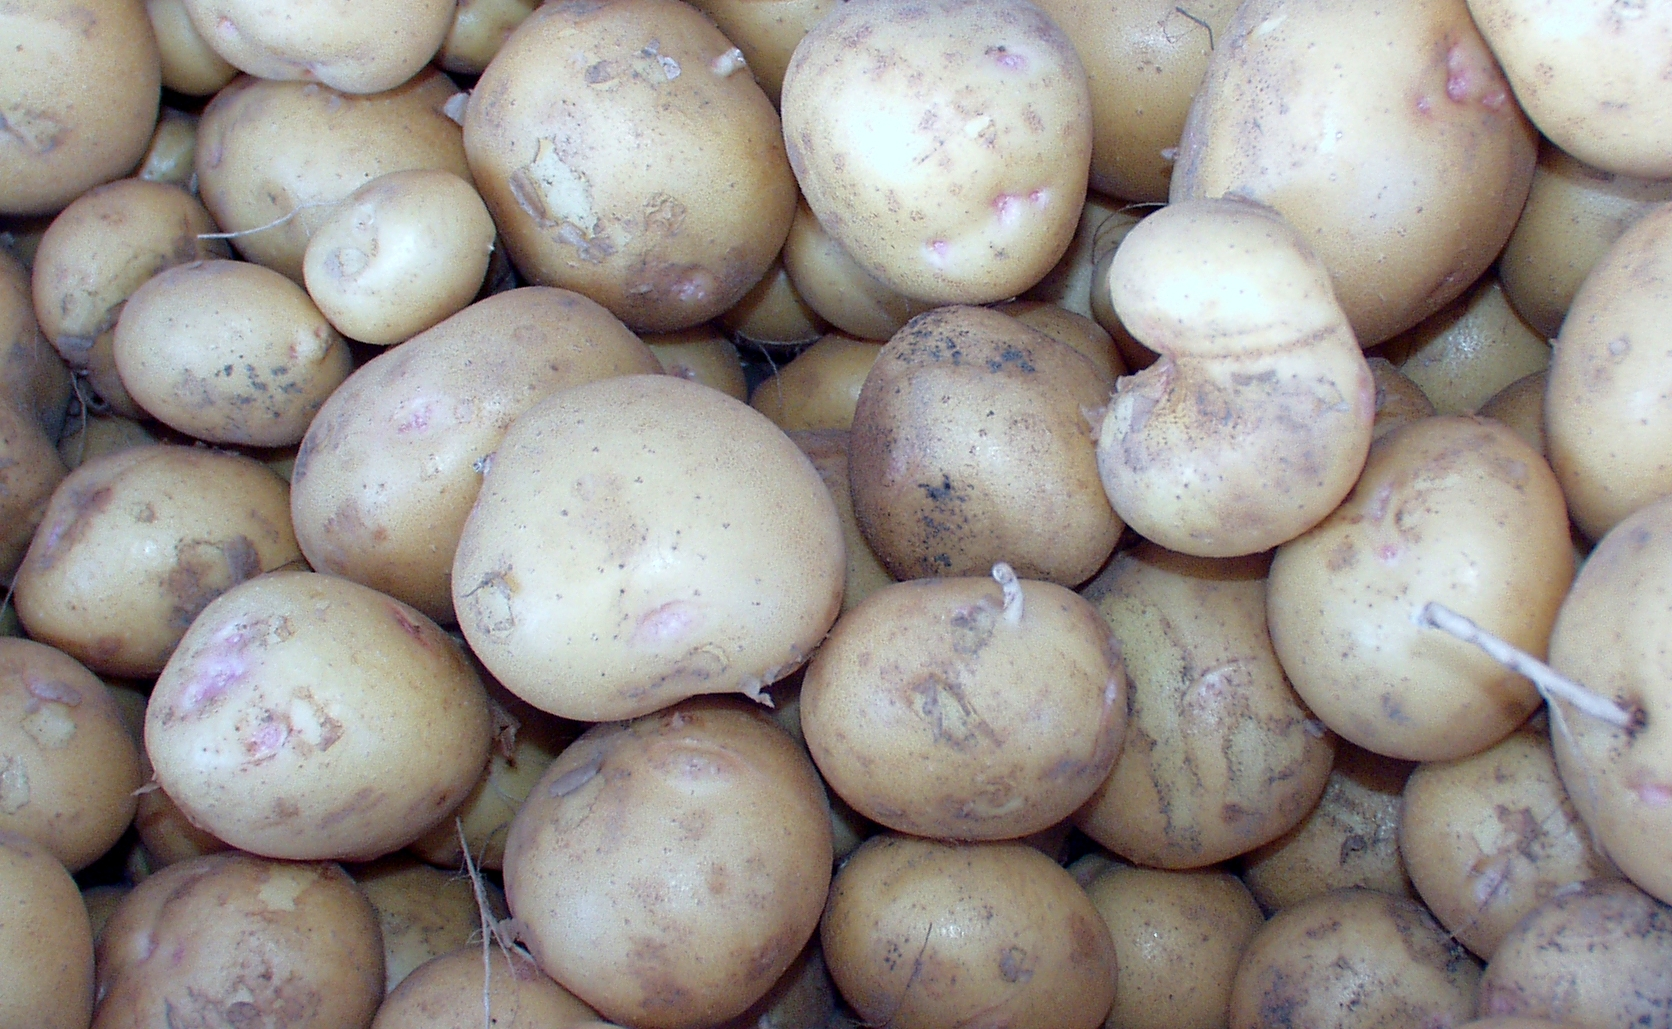 New Yukon Gold potatoes from Alvarez Organic Farms. Photo copyright 2009 by Zachary D. Lyons.